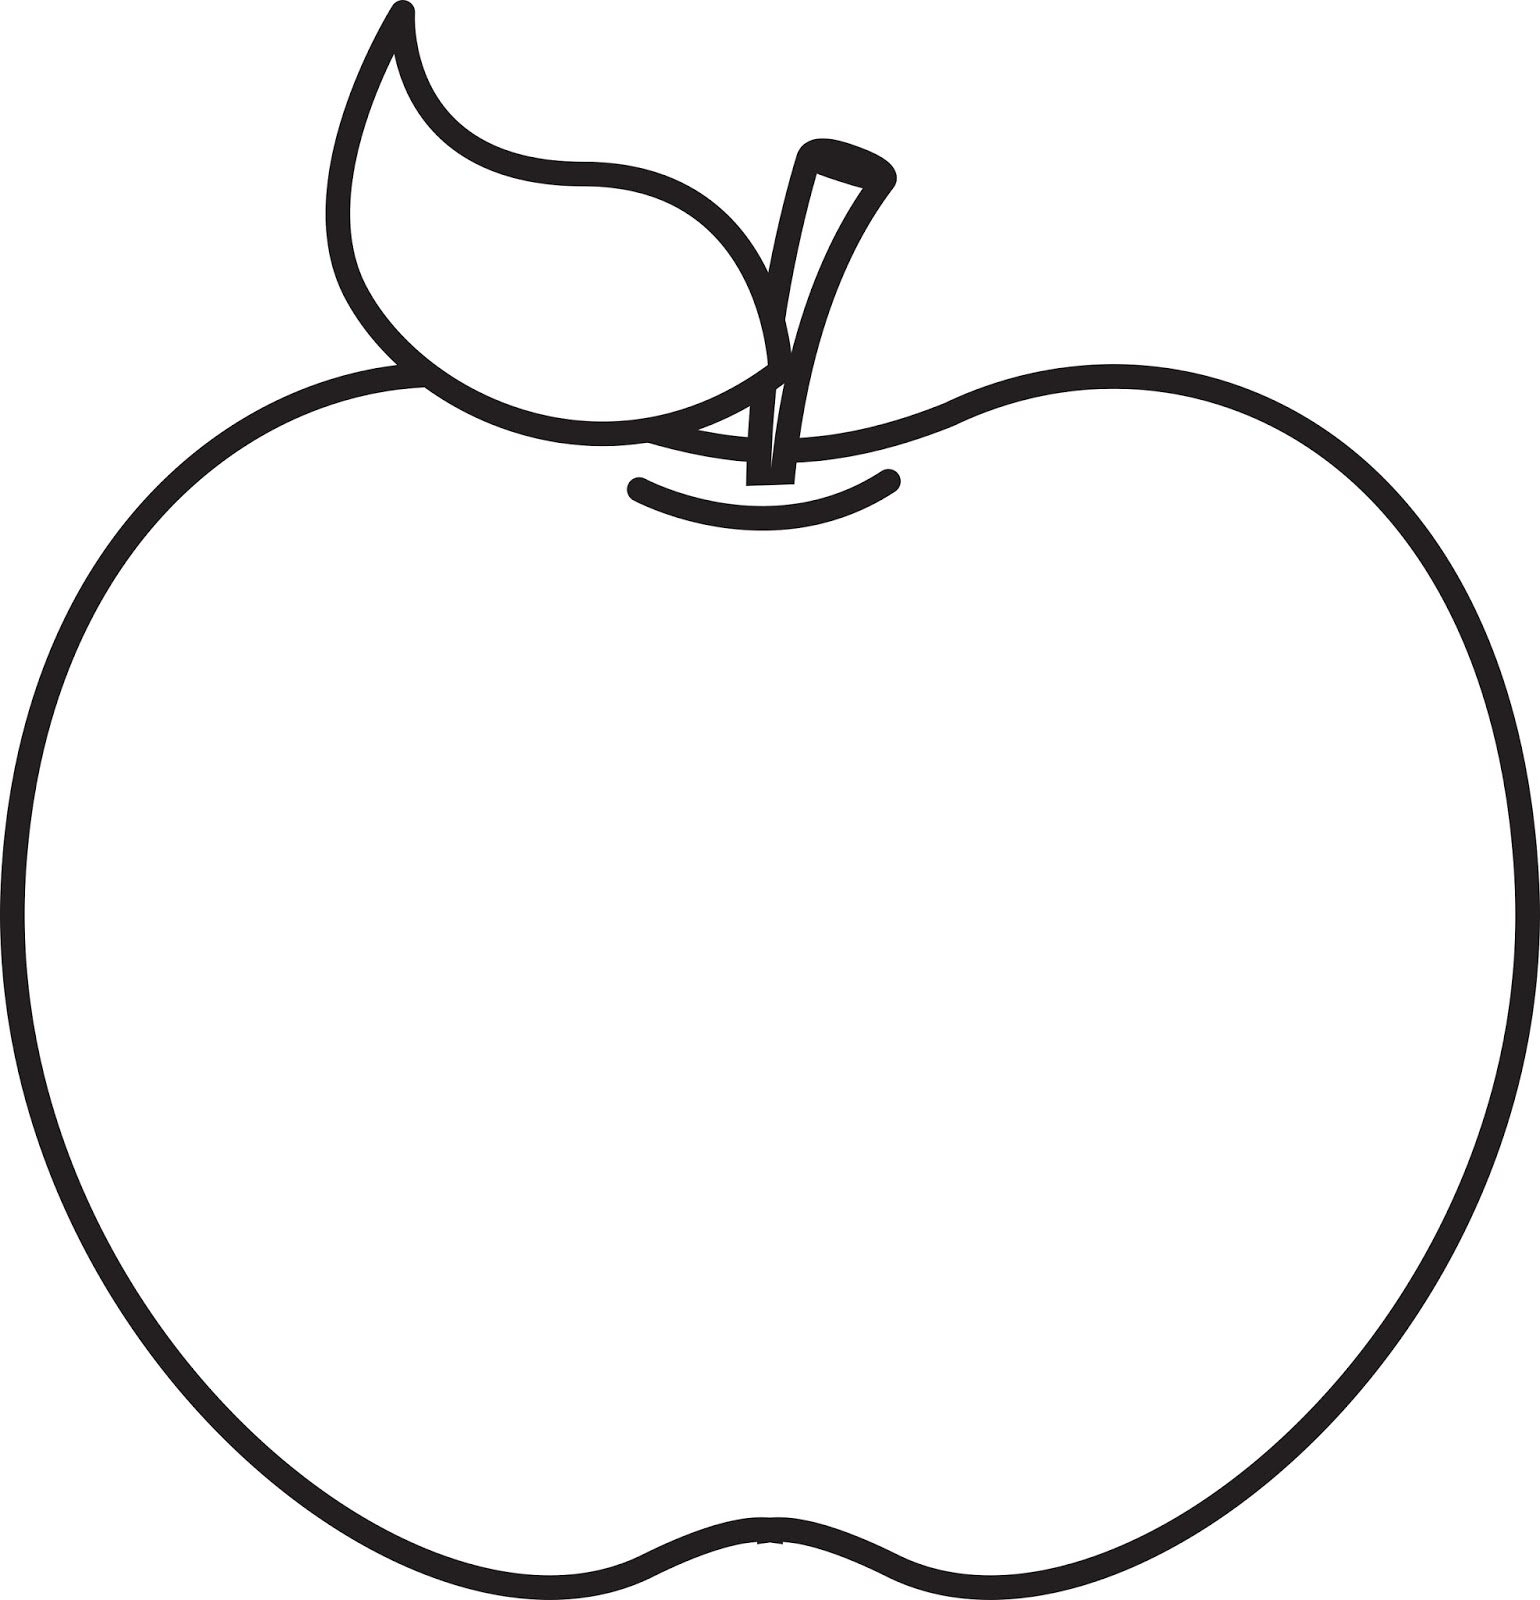 Apple clipart black and white 1 Apple clipart black and white 2